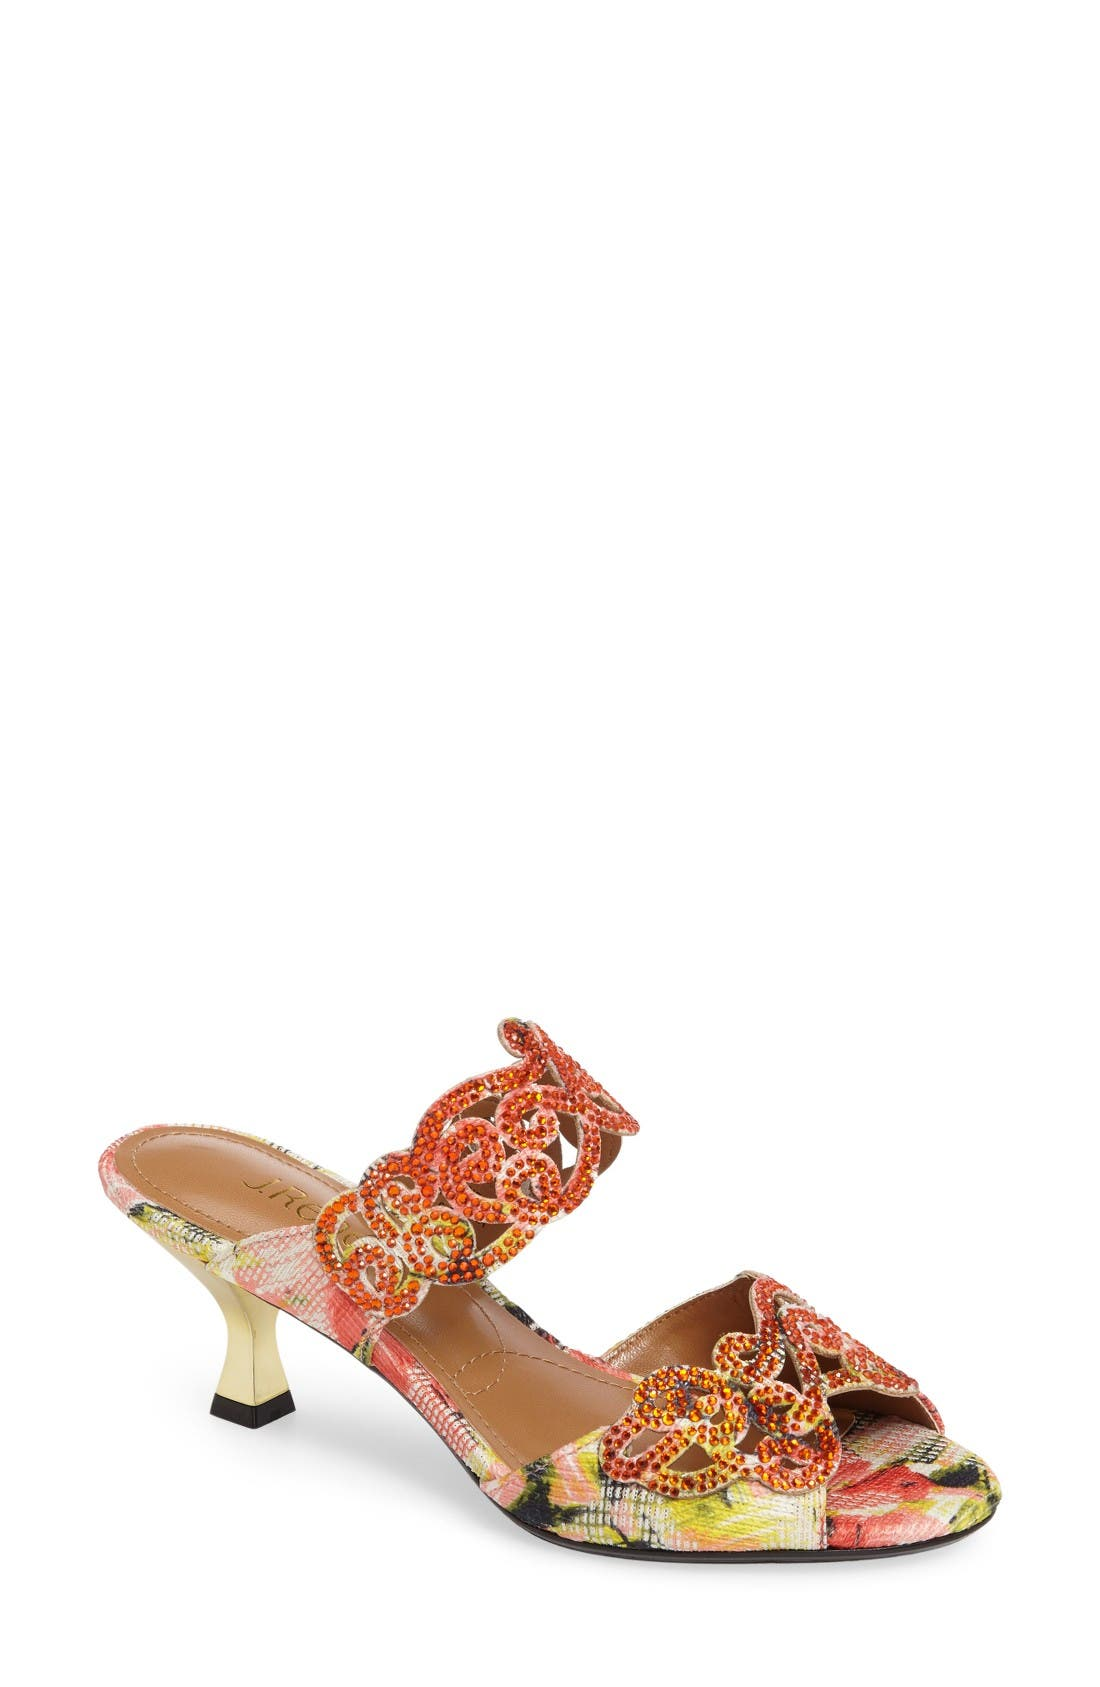 'Francie' Evening Sandal,                         Main,                         color, Coral Multi Fabric